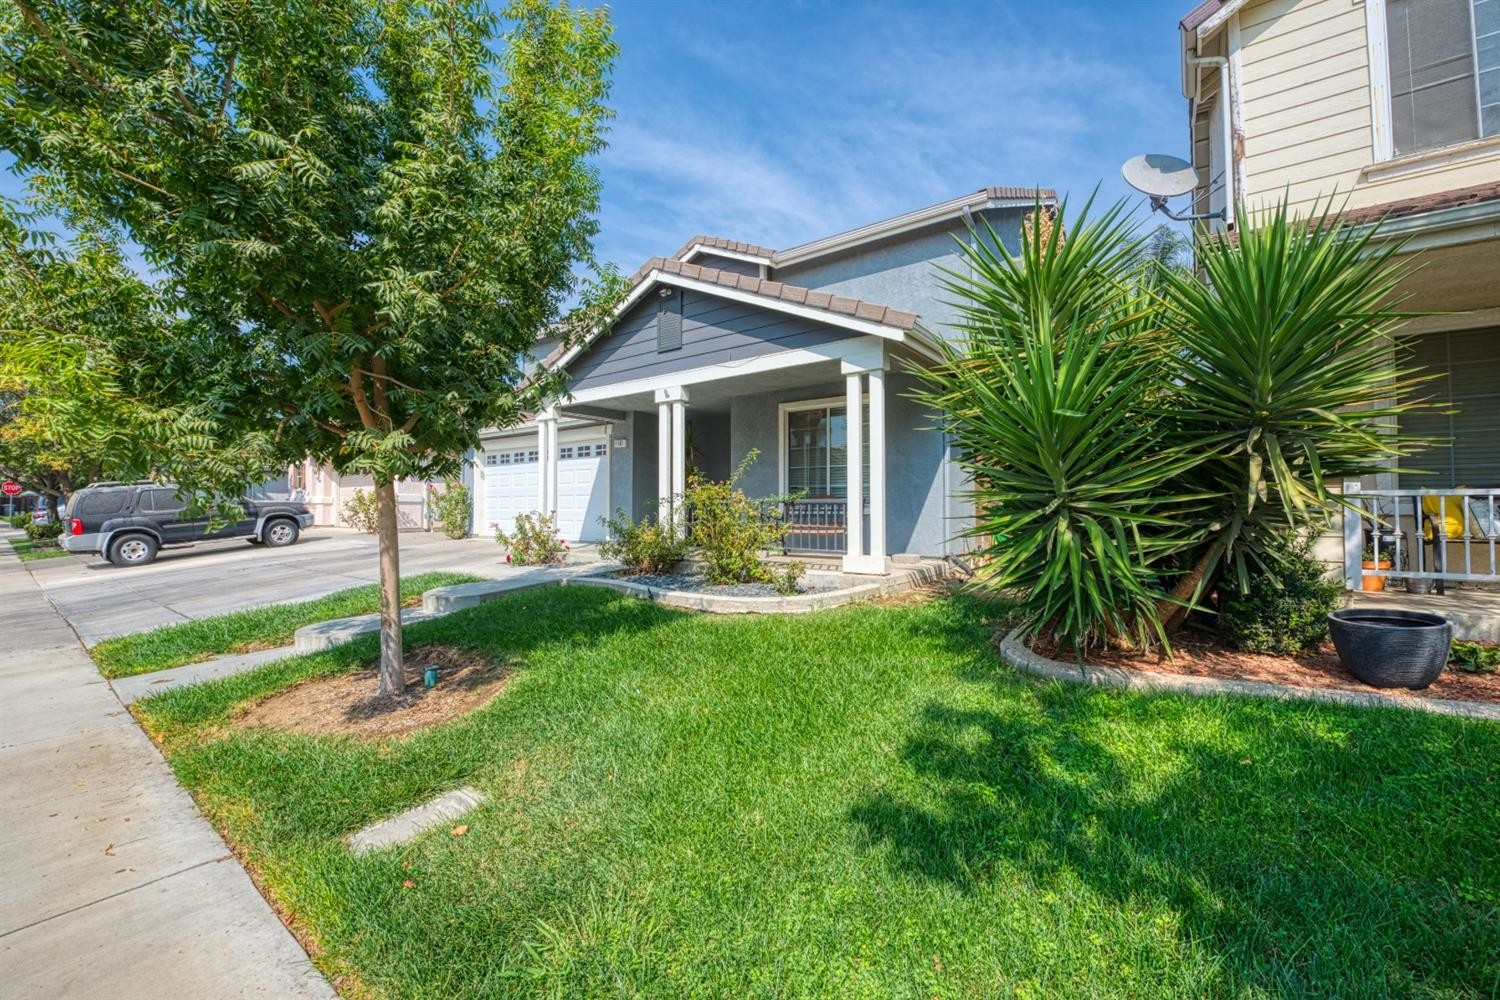 4-Bedroom House In Patterson Ranch